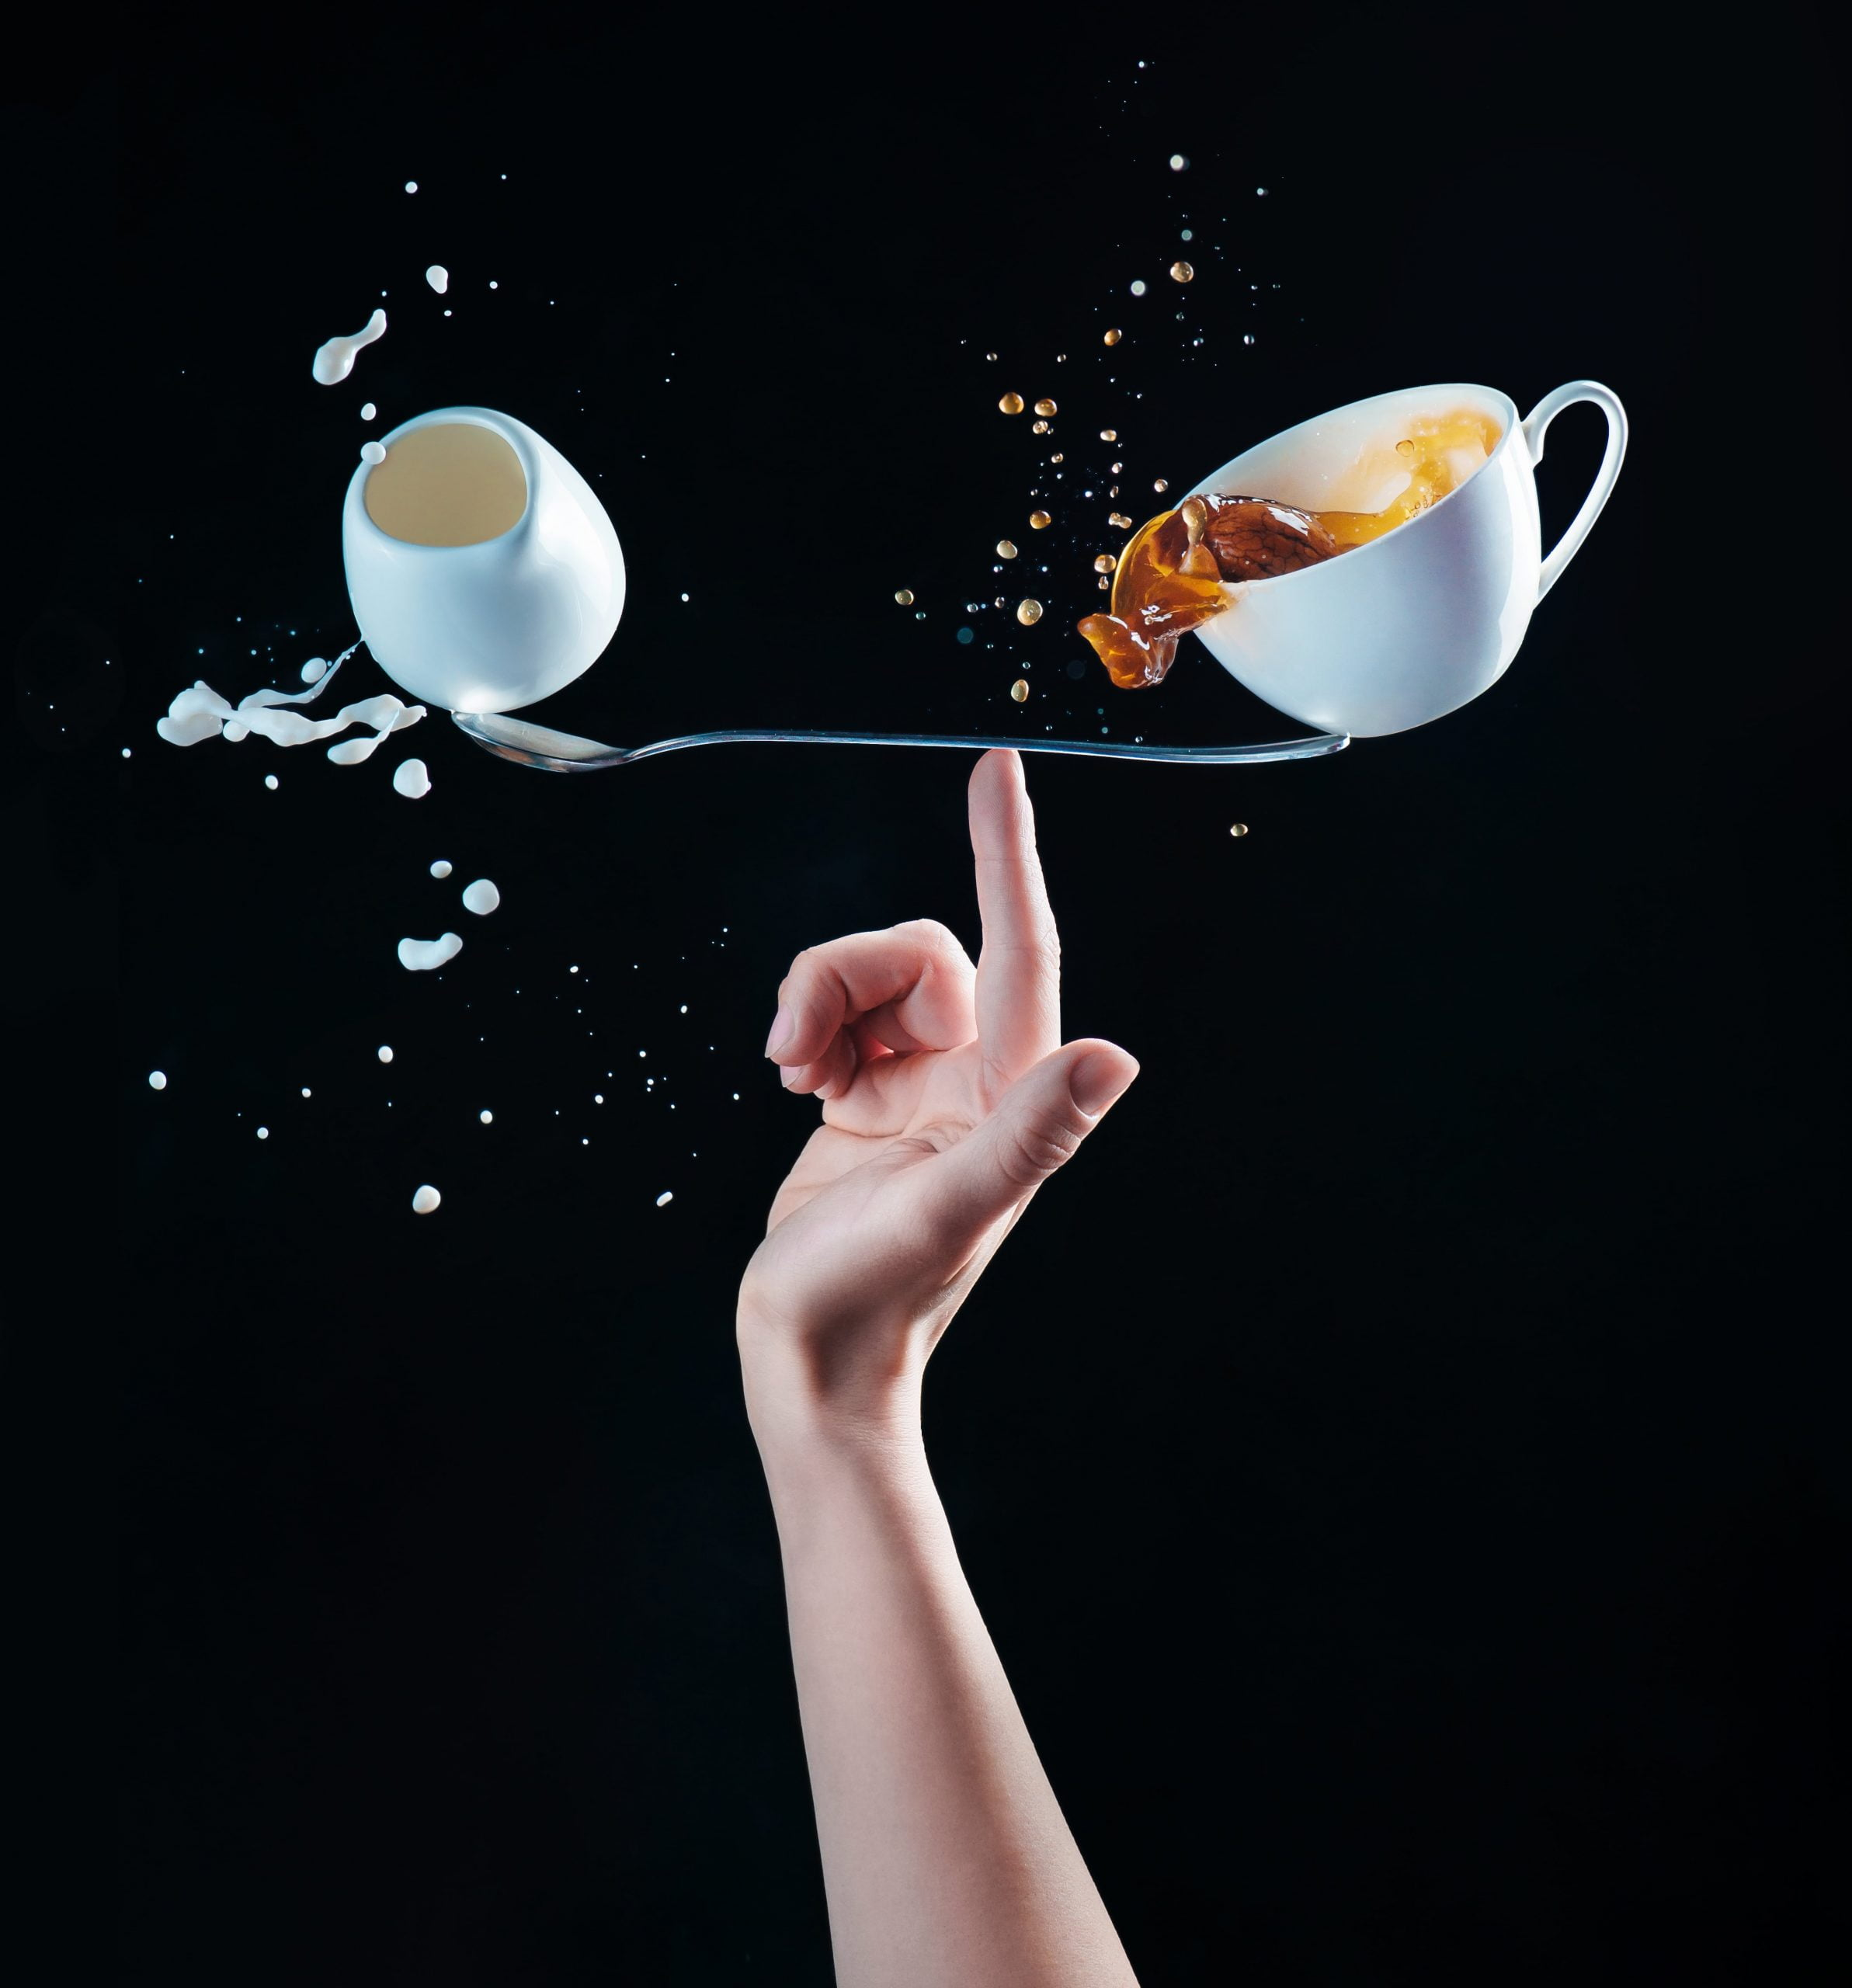 An image of a small jug of milk and a cup of cofee balanced on a fork, symbolazing harmony.